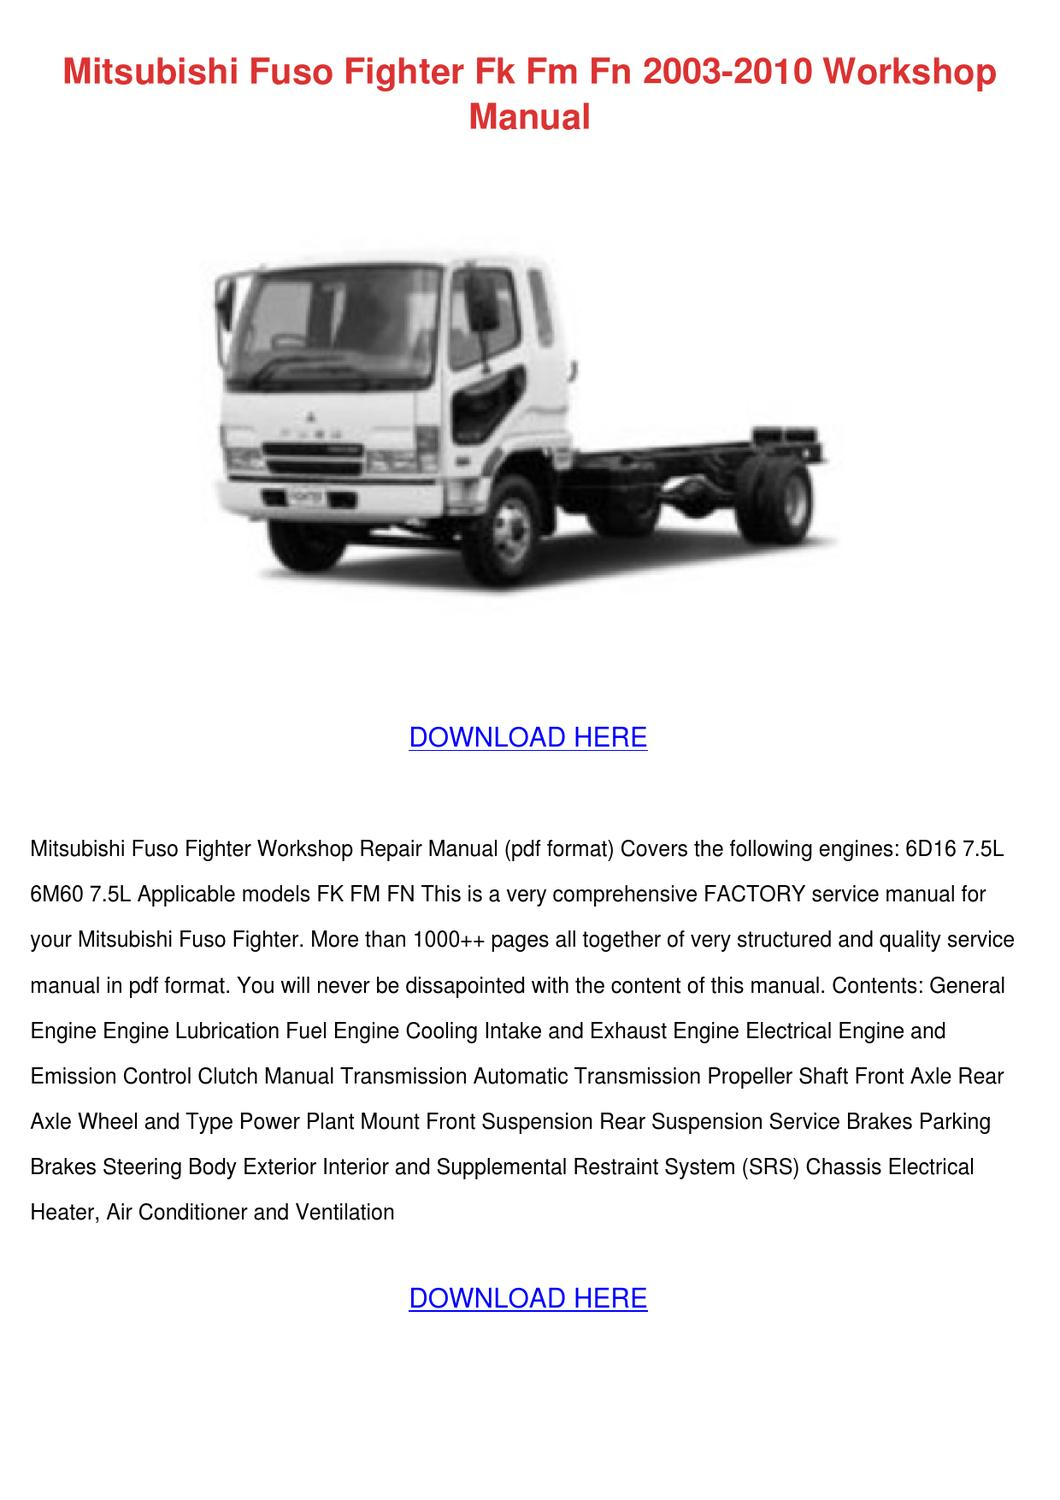 page_1 mitsubishi fuso fighter fk fm fn 2003 2010 wo by asia hafter issuu mitsubishi fuso wiring diagram at readyjetset.co